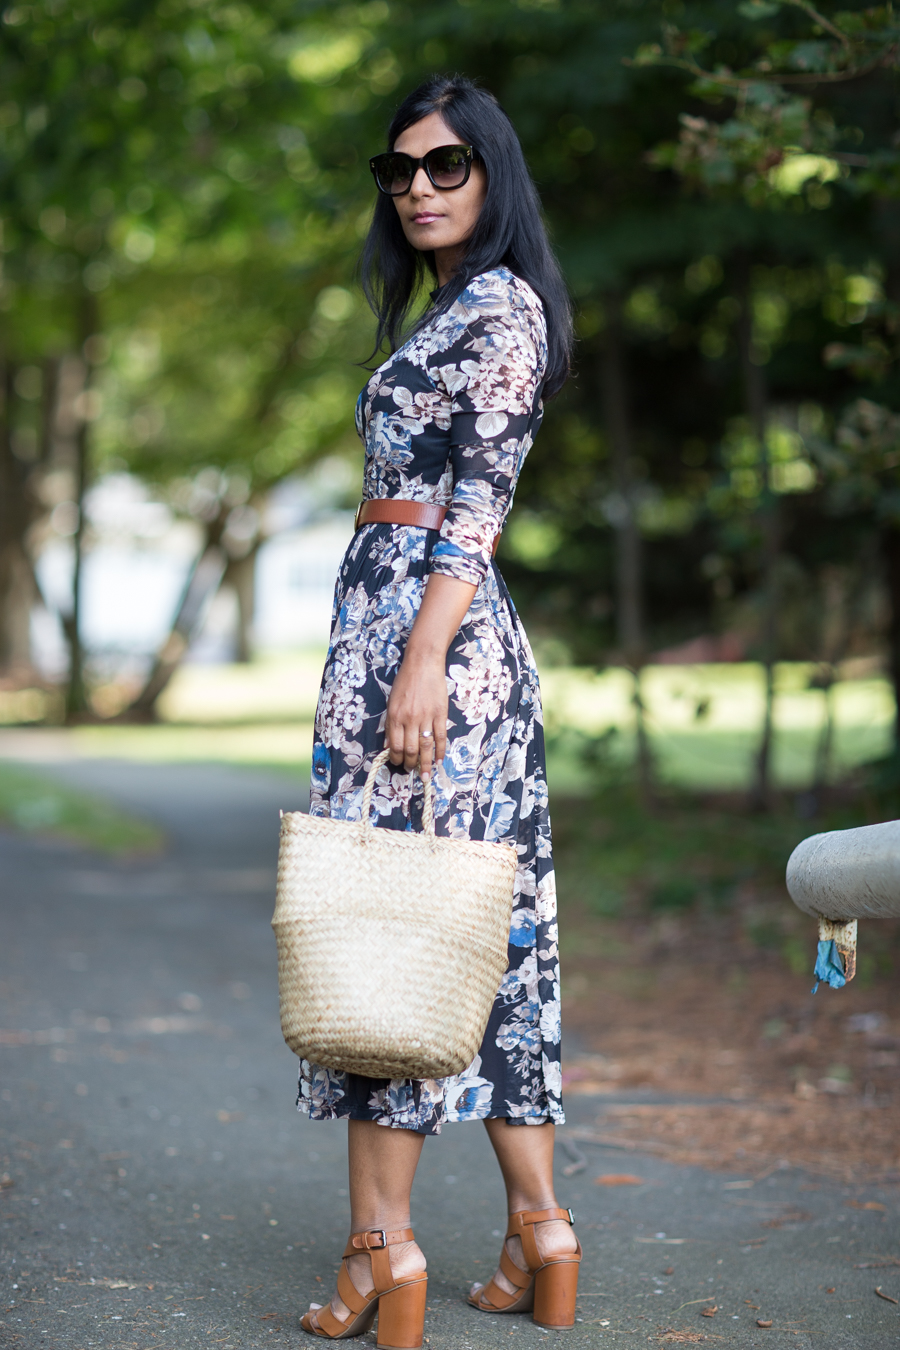 floral print, floral dress, fall style trends, basket bag, alexander mcqueen, nordstrom rack, affordable style, petite fashion, petite blogger, boston stylist